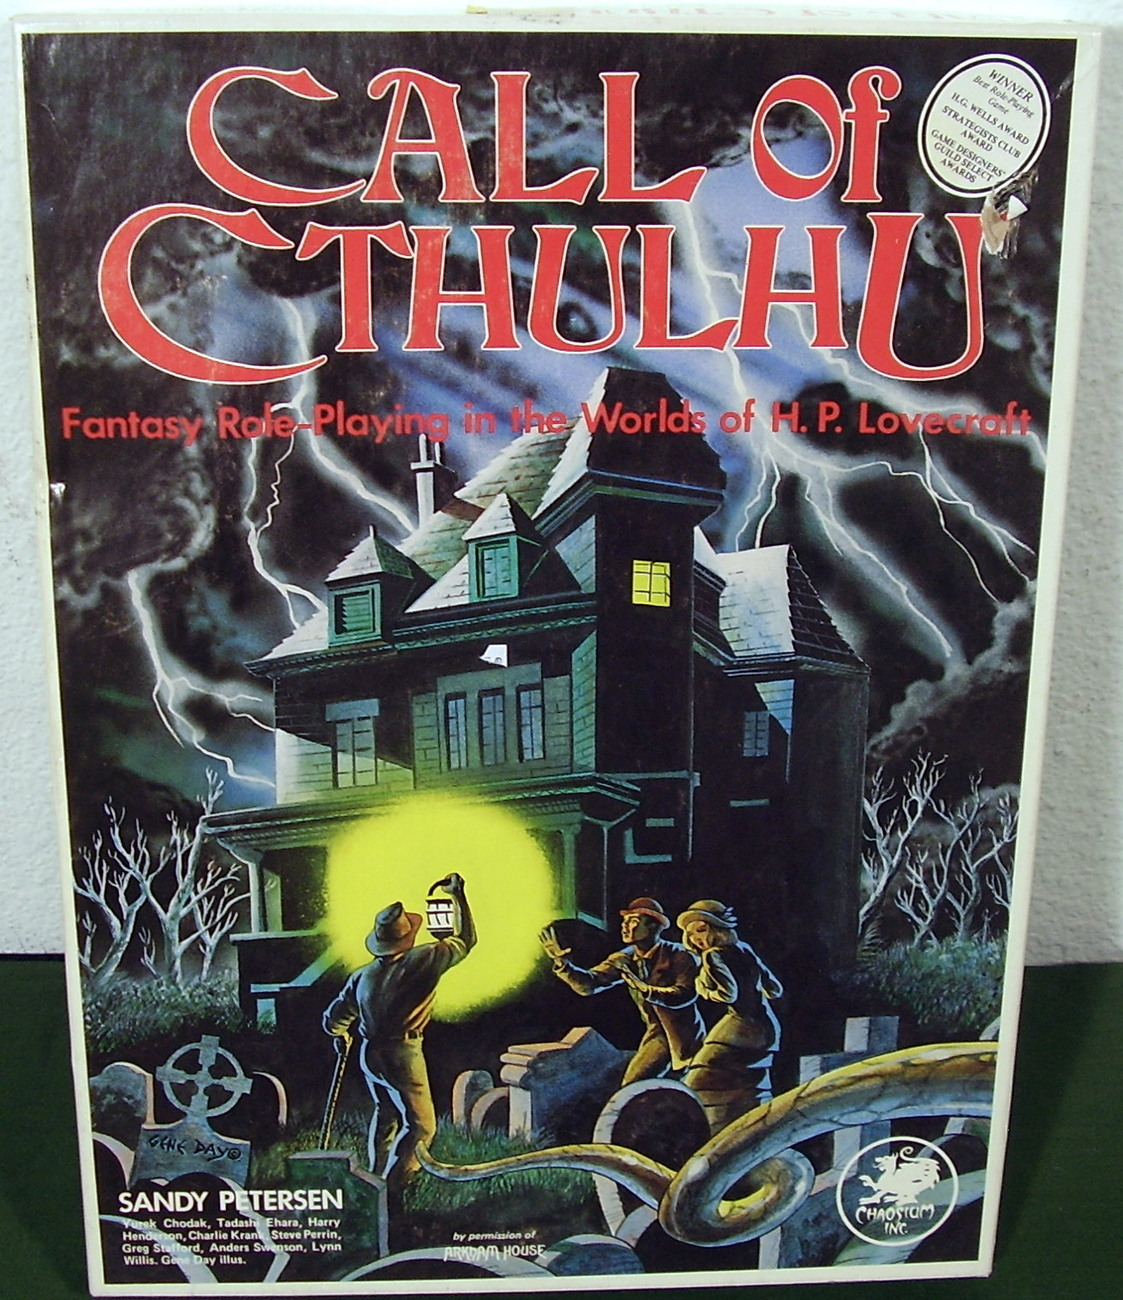 Call of Cthulhu 1981 RPG Game by Chaosium